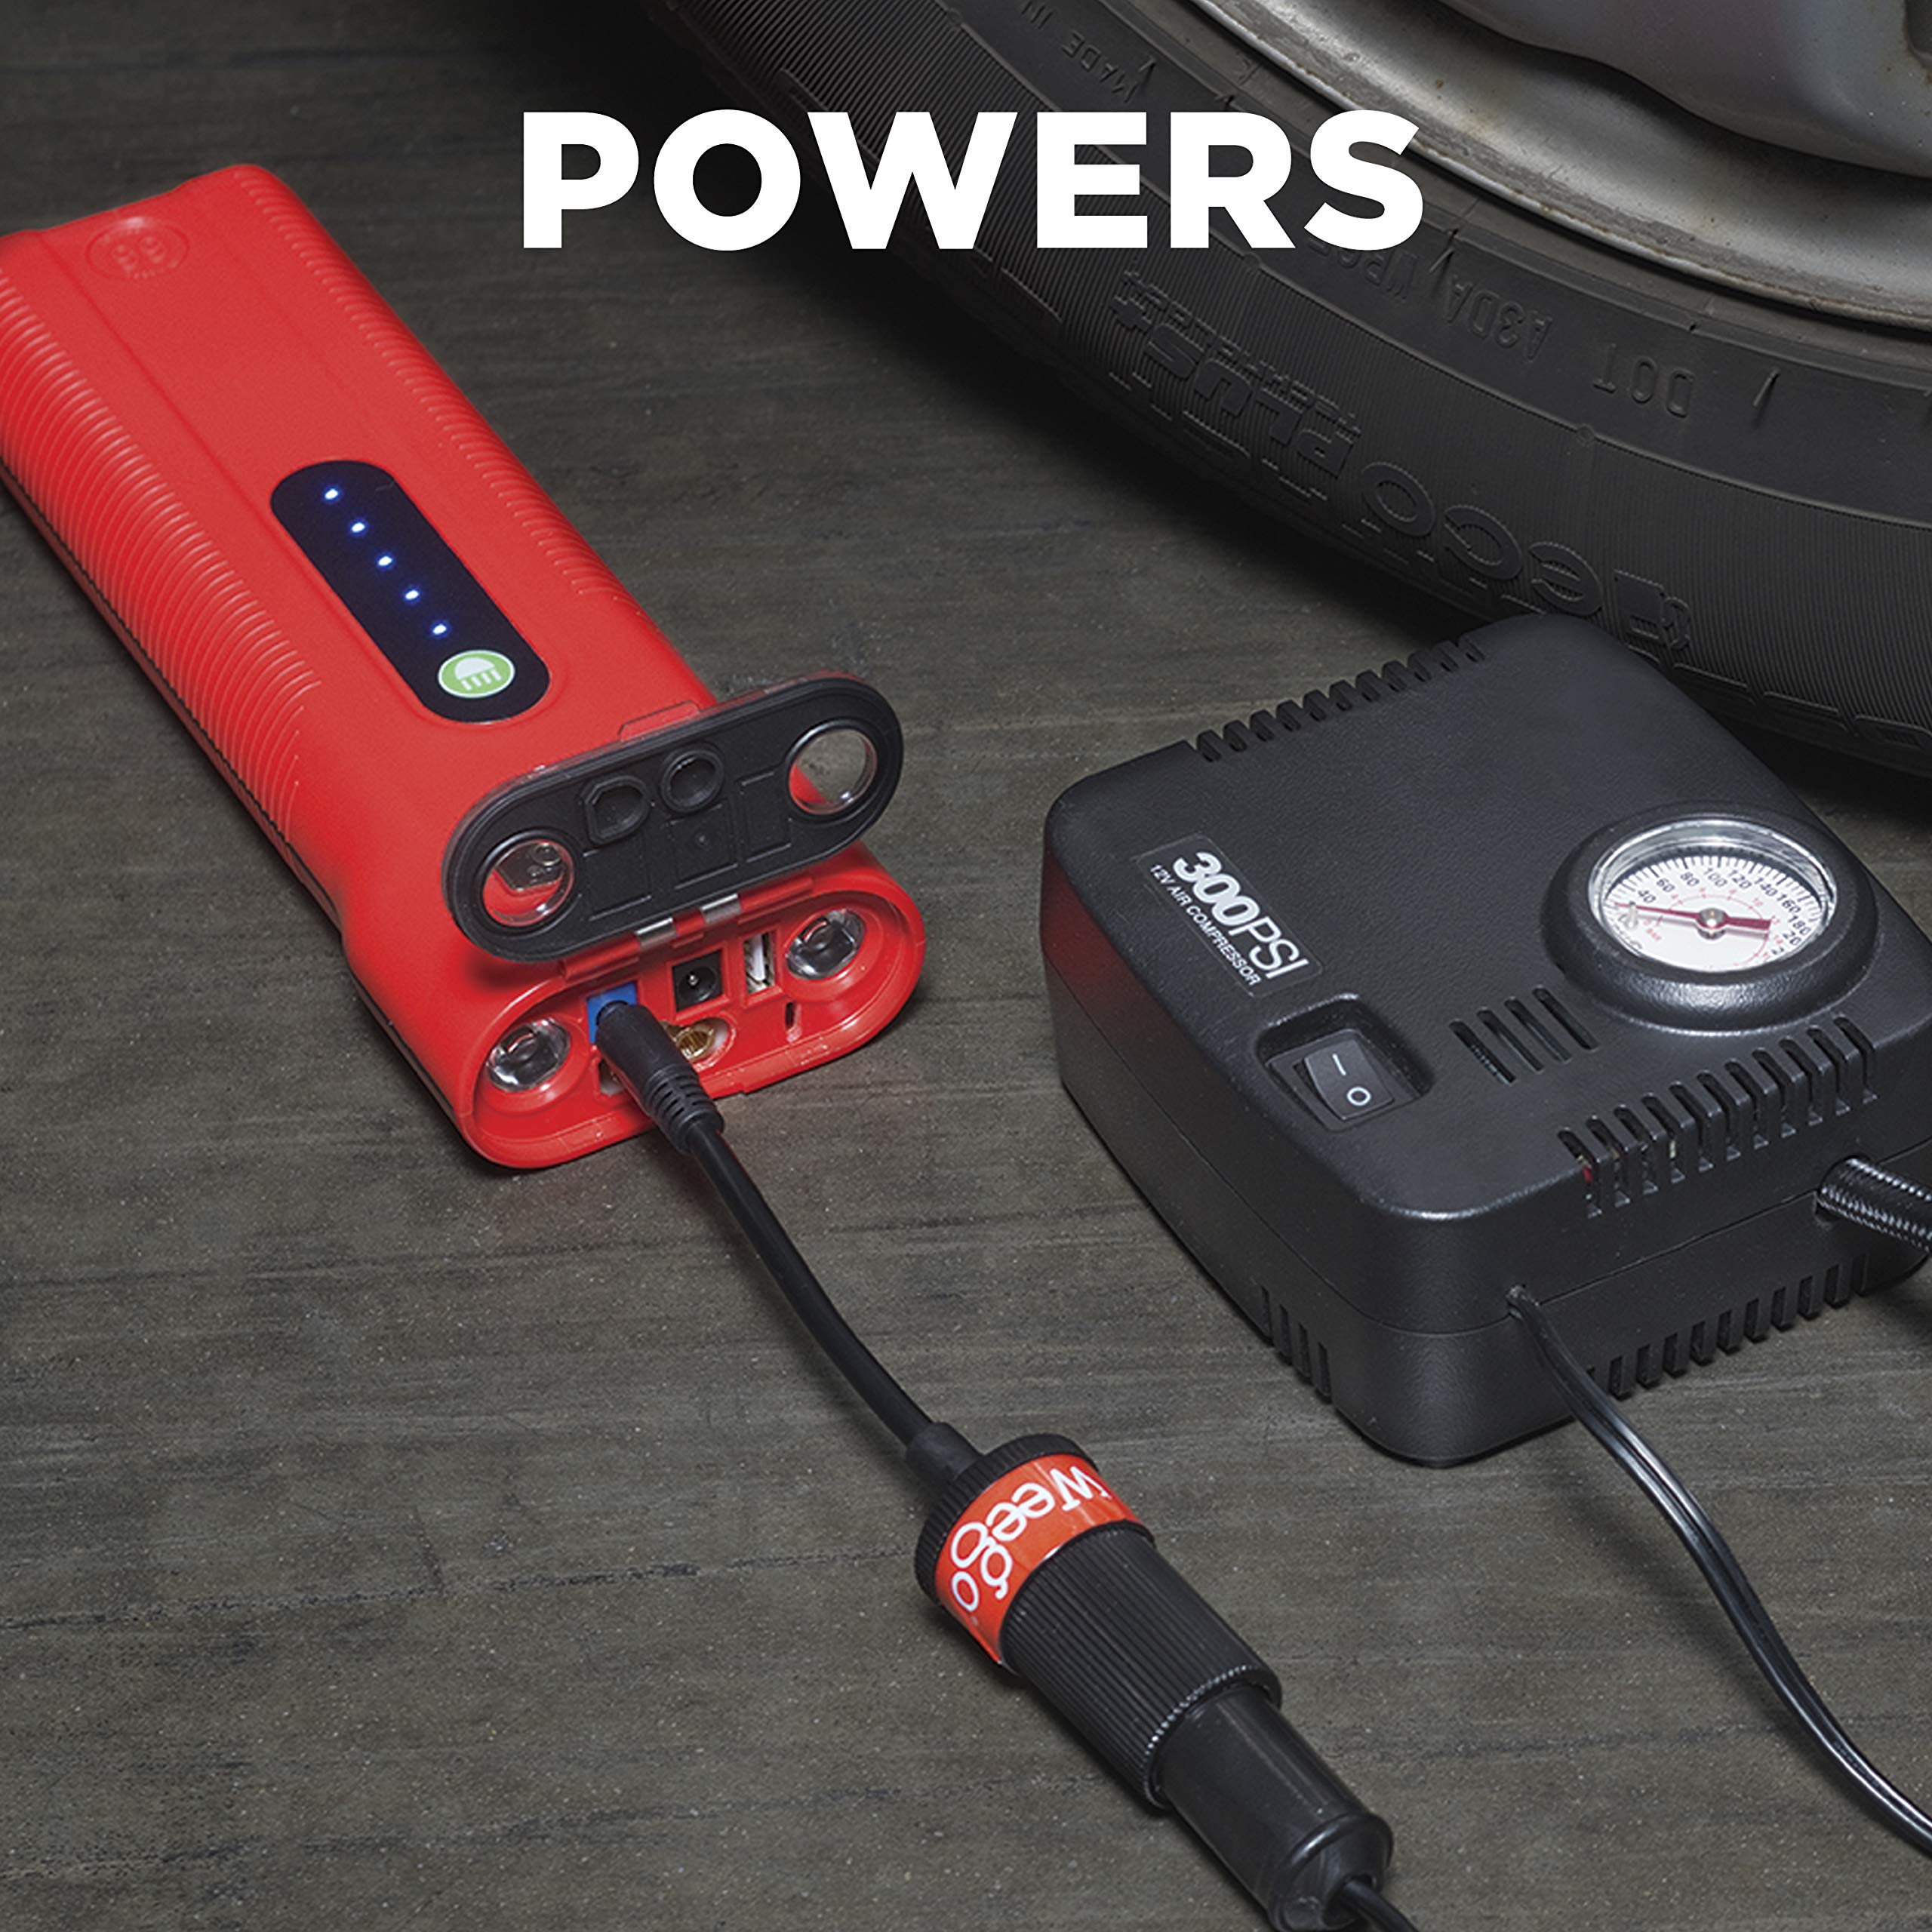 Weego 66.1 Jump Starting Power Pack MEGA BUNDLE includes Weego 66.1 High Performance Lithium Ion Jump Starter (New 2019 Model) plus Weego 12V DC Adapter, Weego SAE Adapter and Weego OBDII Memory Saver by Weego (Image #4)